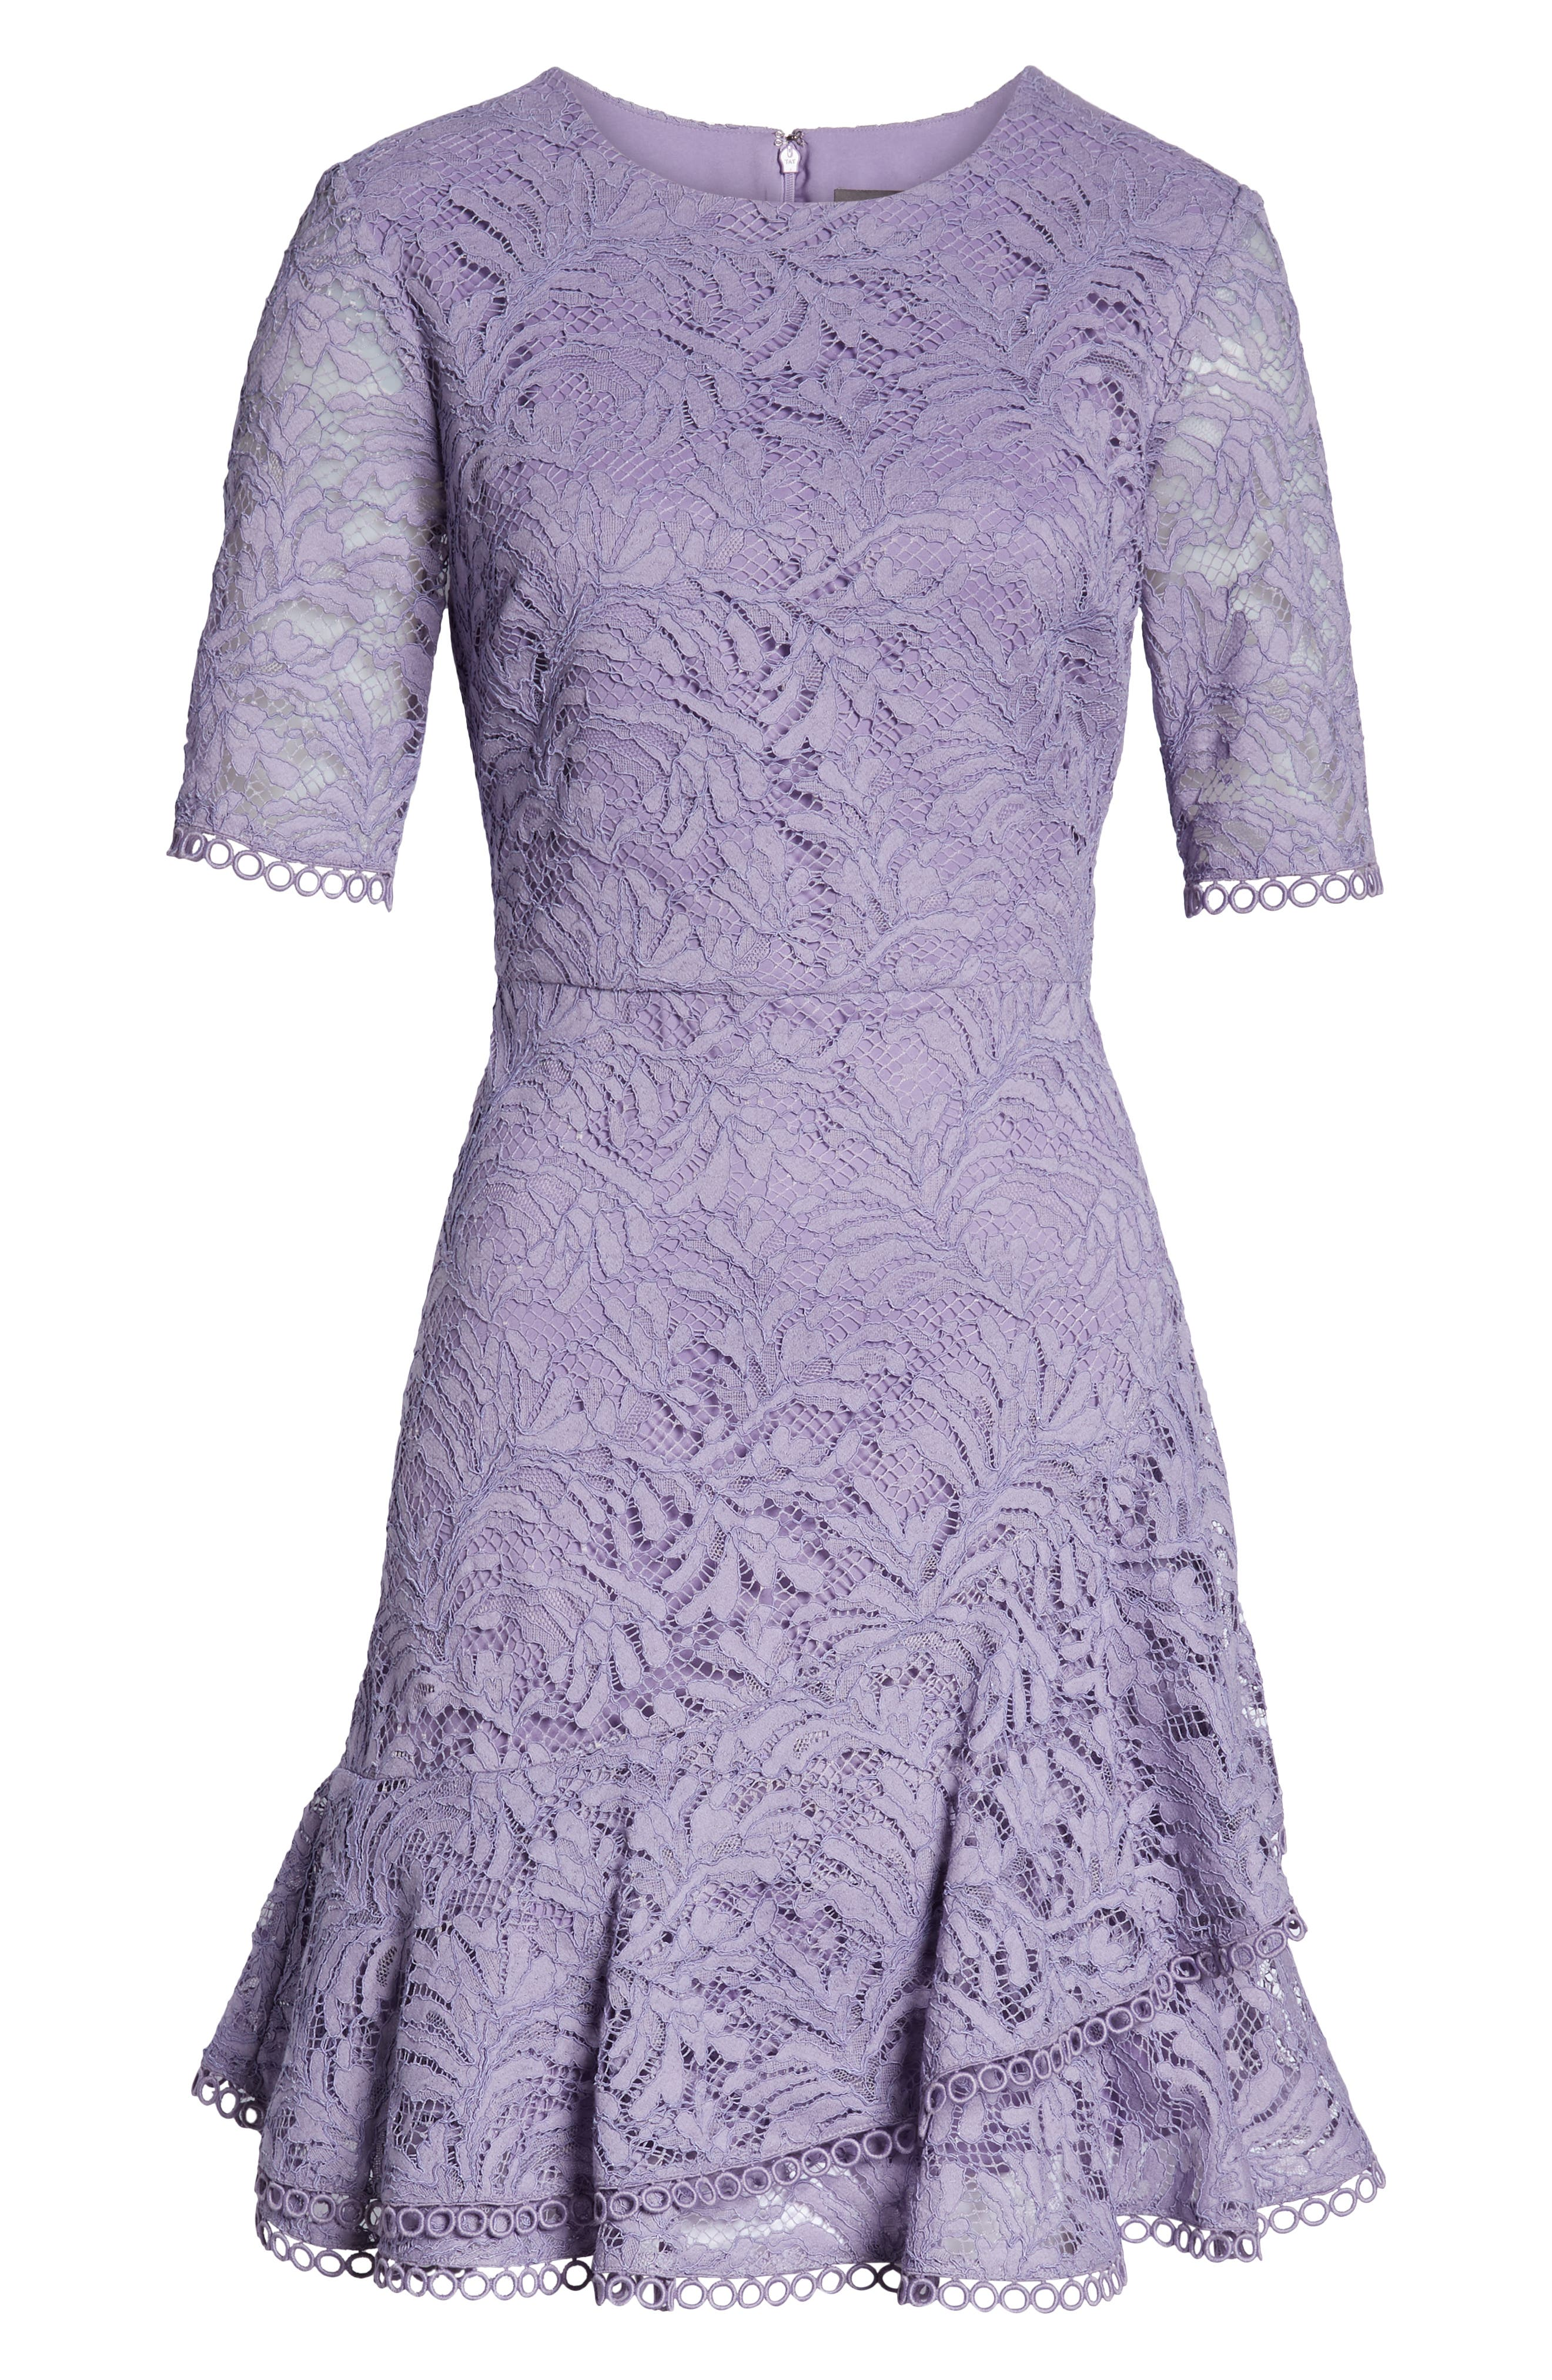 VINCE CAMUTO, Asymmetrical Ruffle Lace Fit & Flare Dress, Alternate thumbnail 7, color, 524